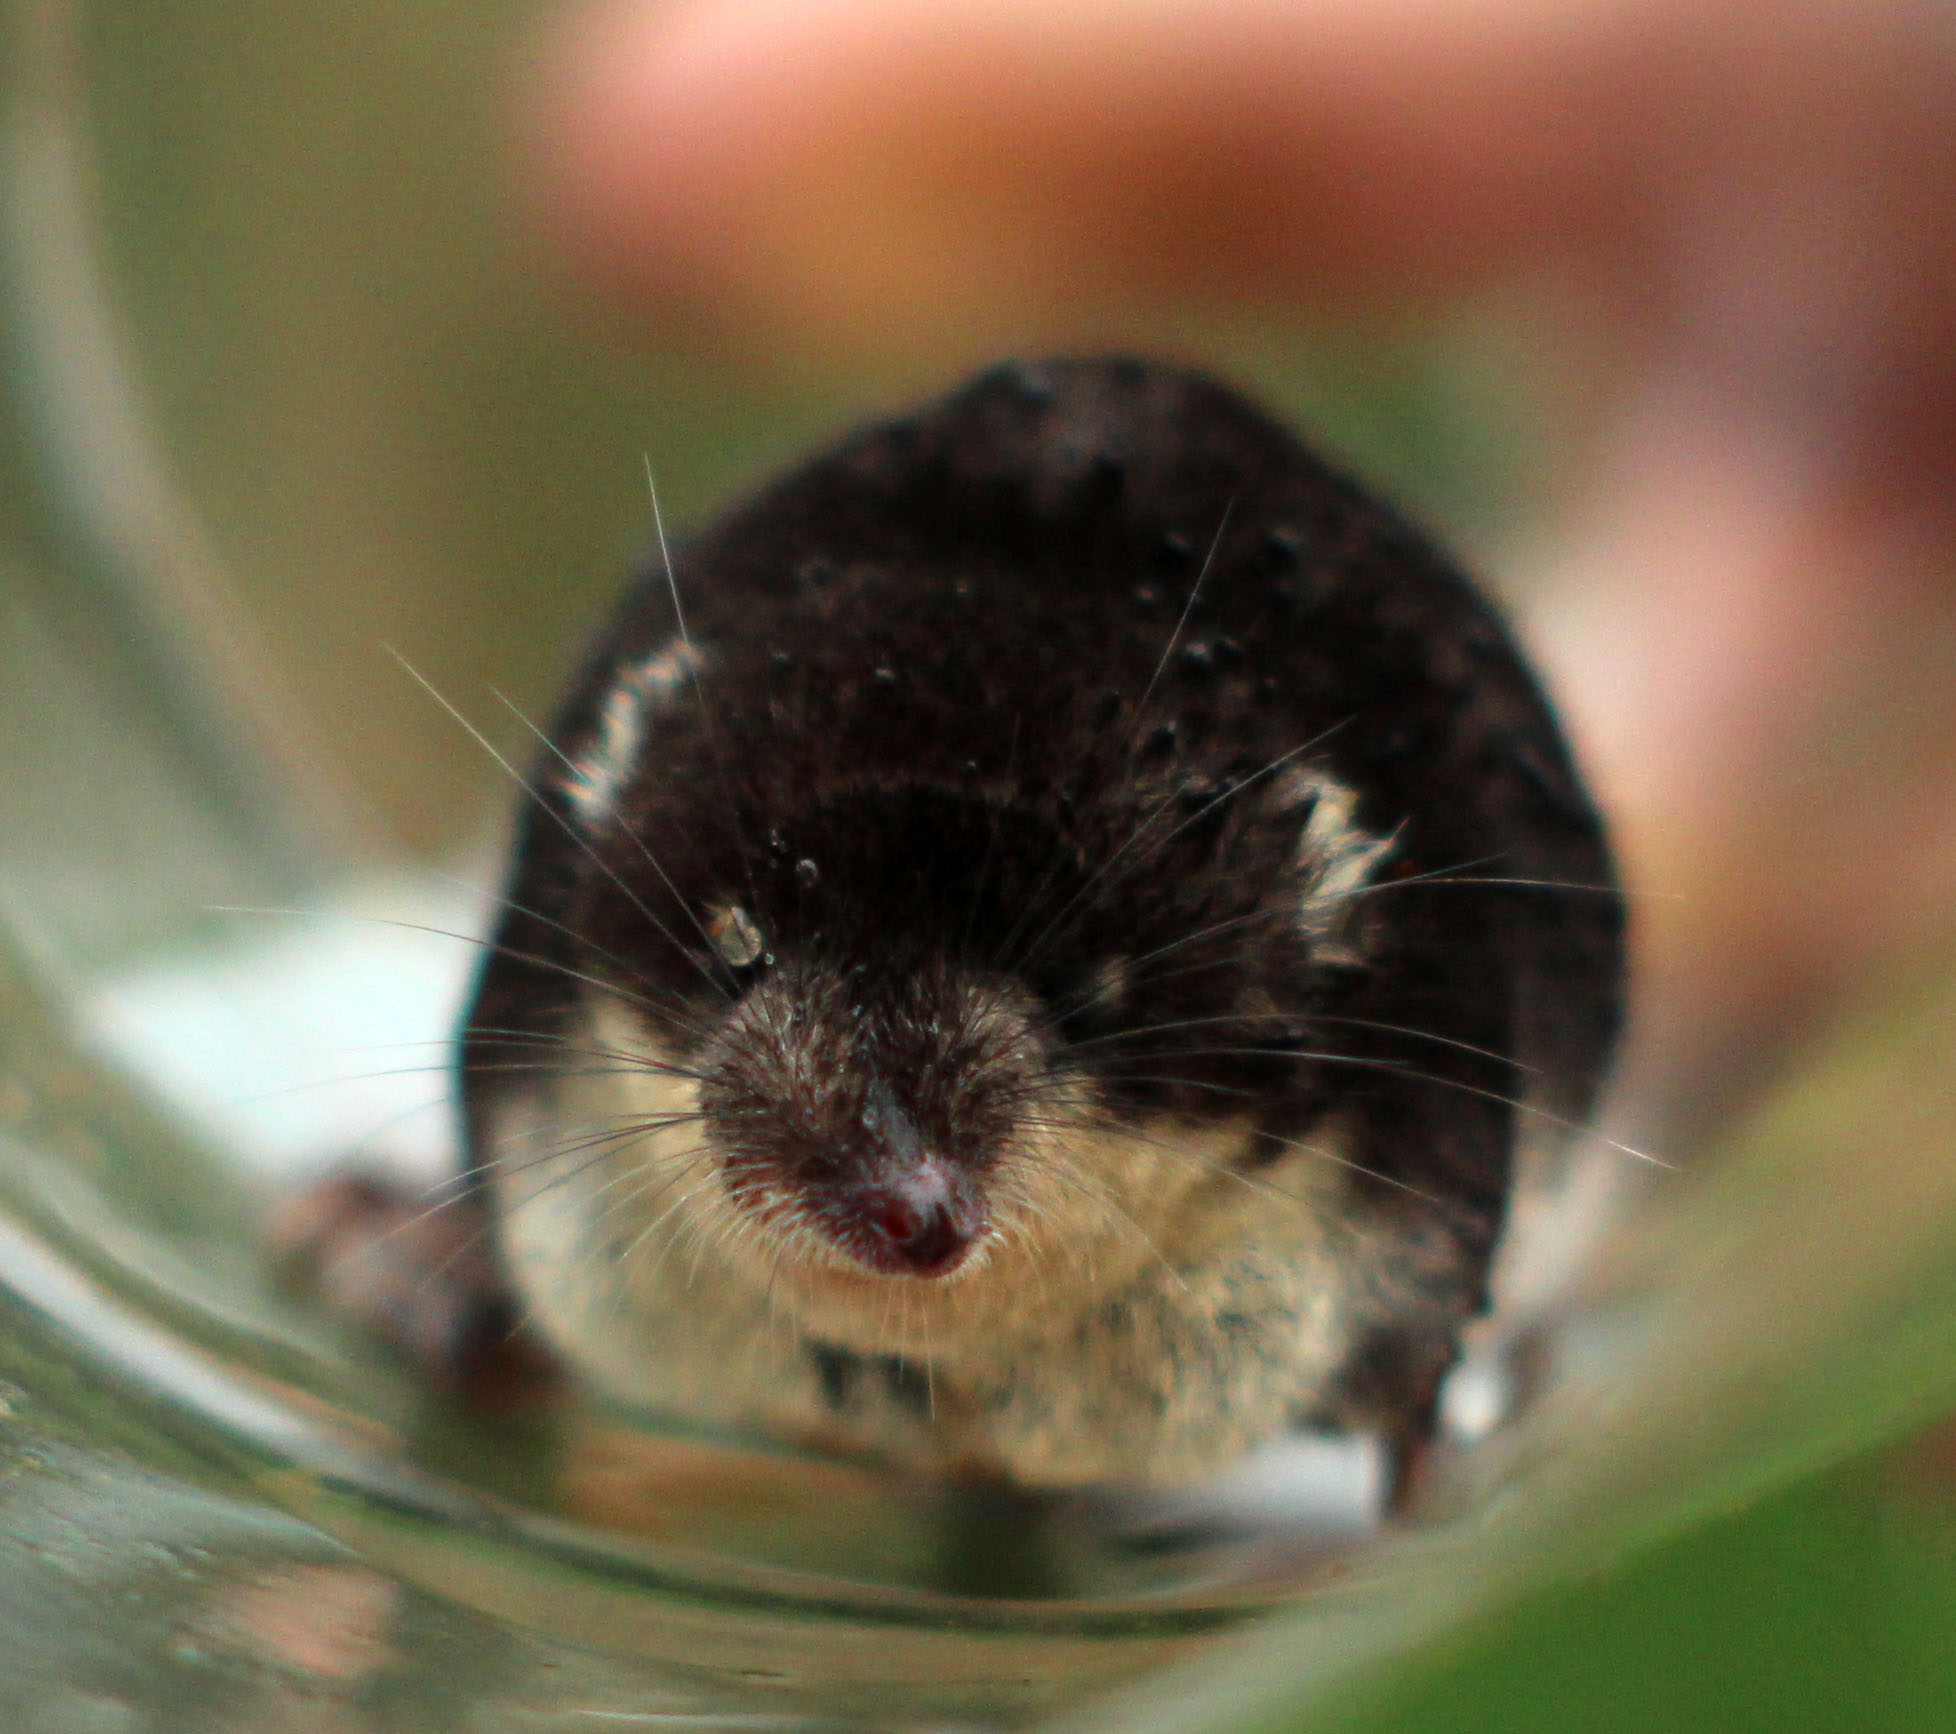 A wet and tired looking water shrew